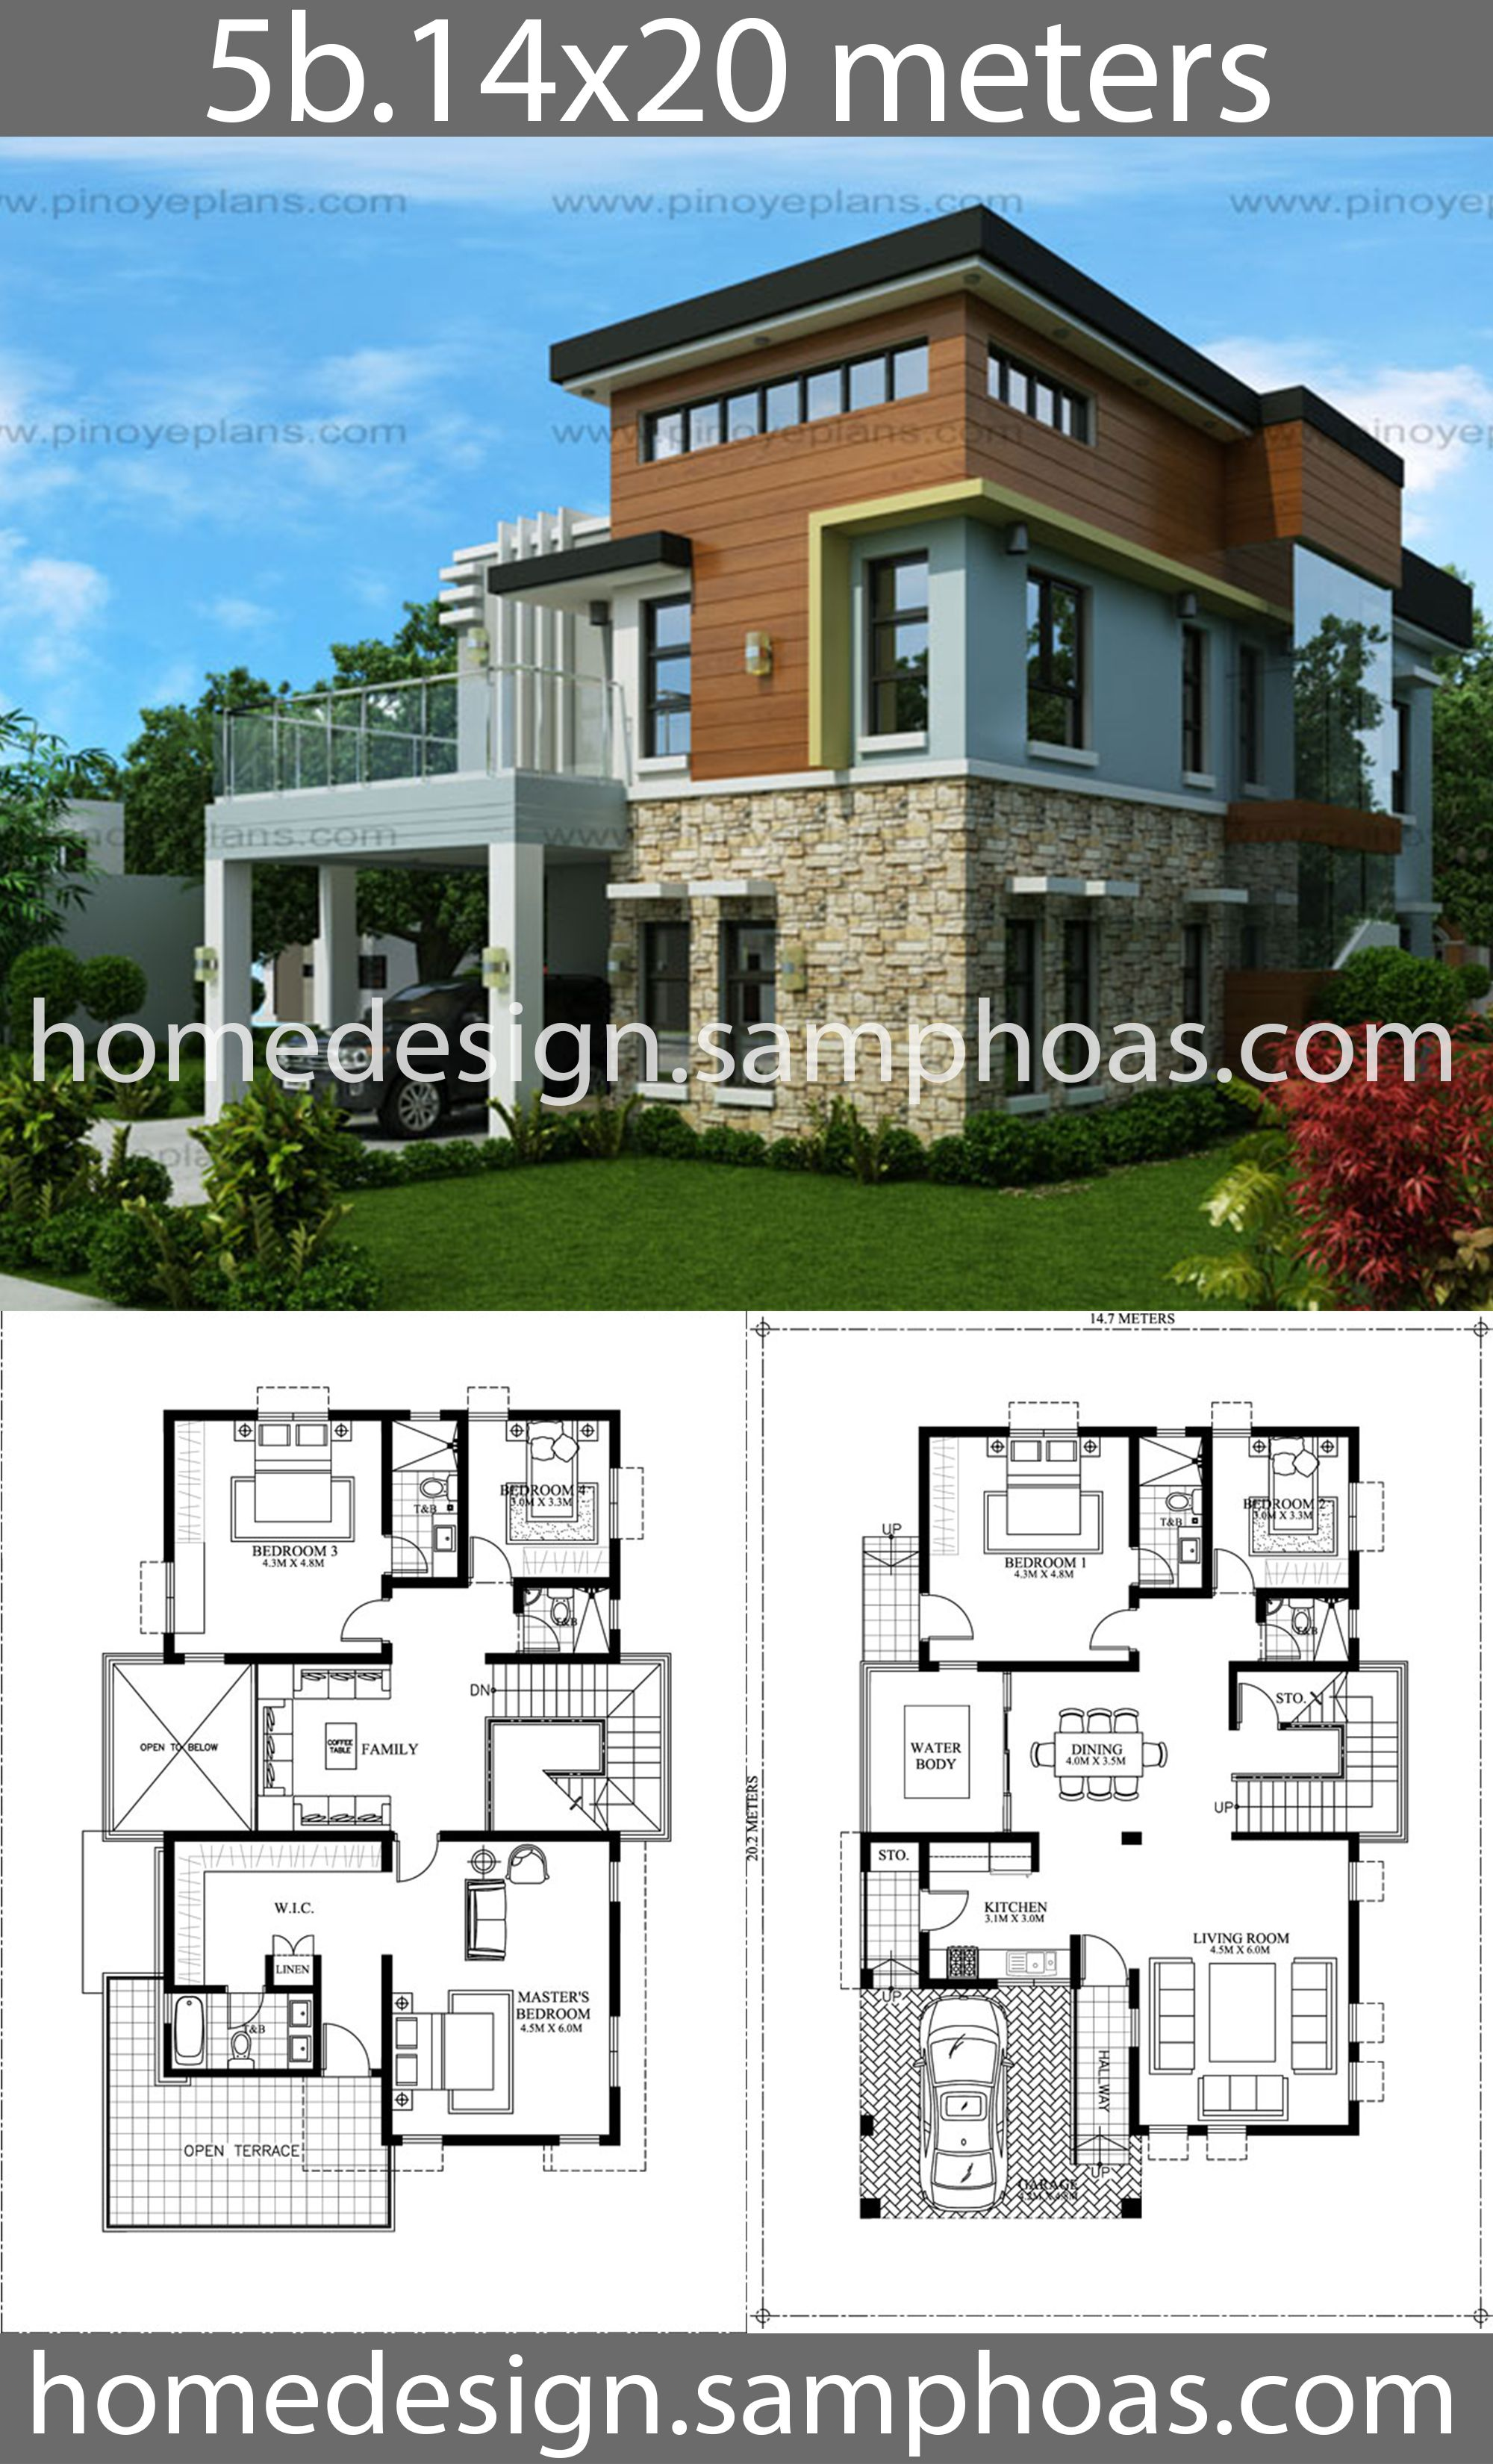 House Design Plans 14x20m With 5 Bedrooms Beautiful House Plans Home Design Plans House Design